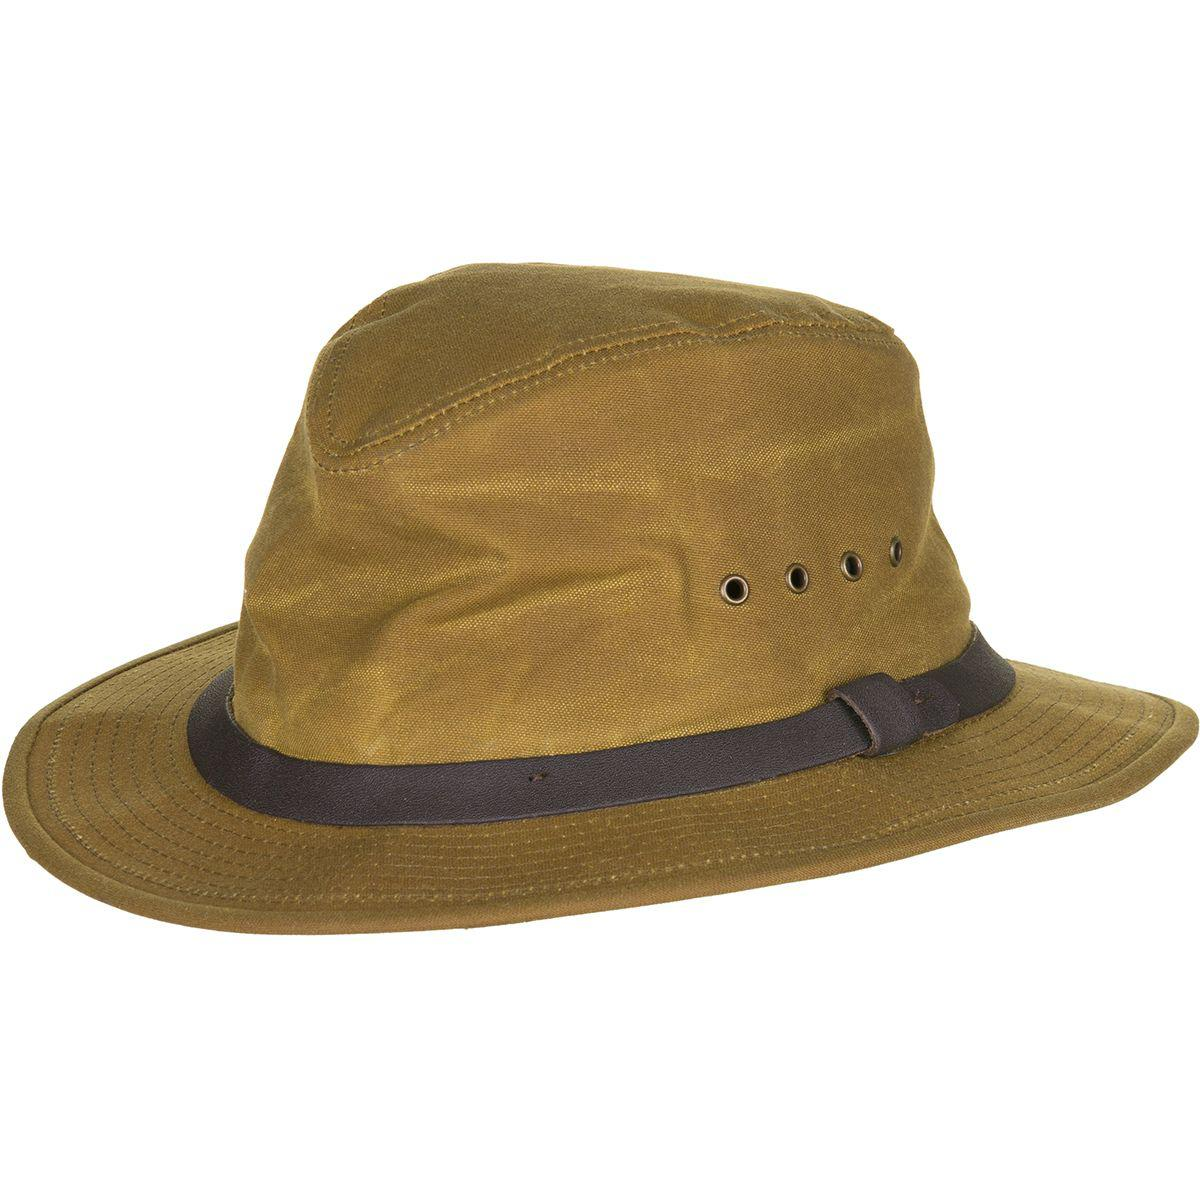 68a0ea1d8 Lyst - Filson Insulated Packer Hat in Green for Men